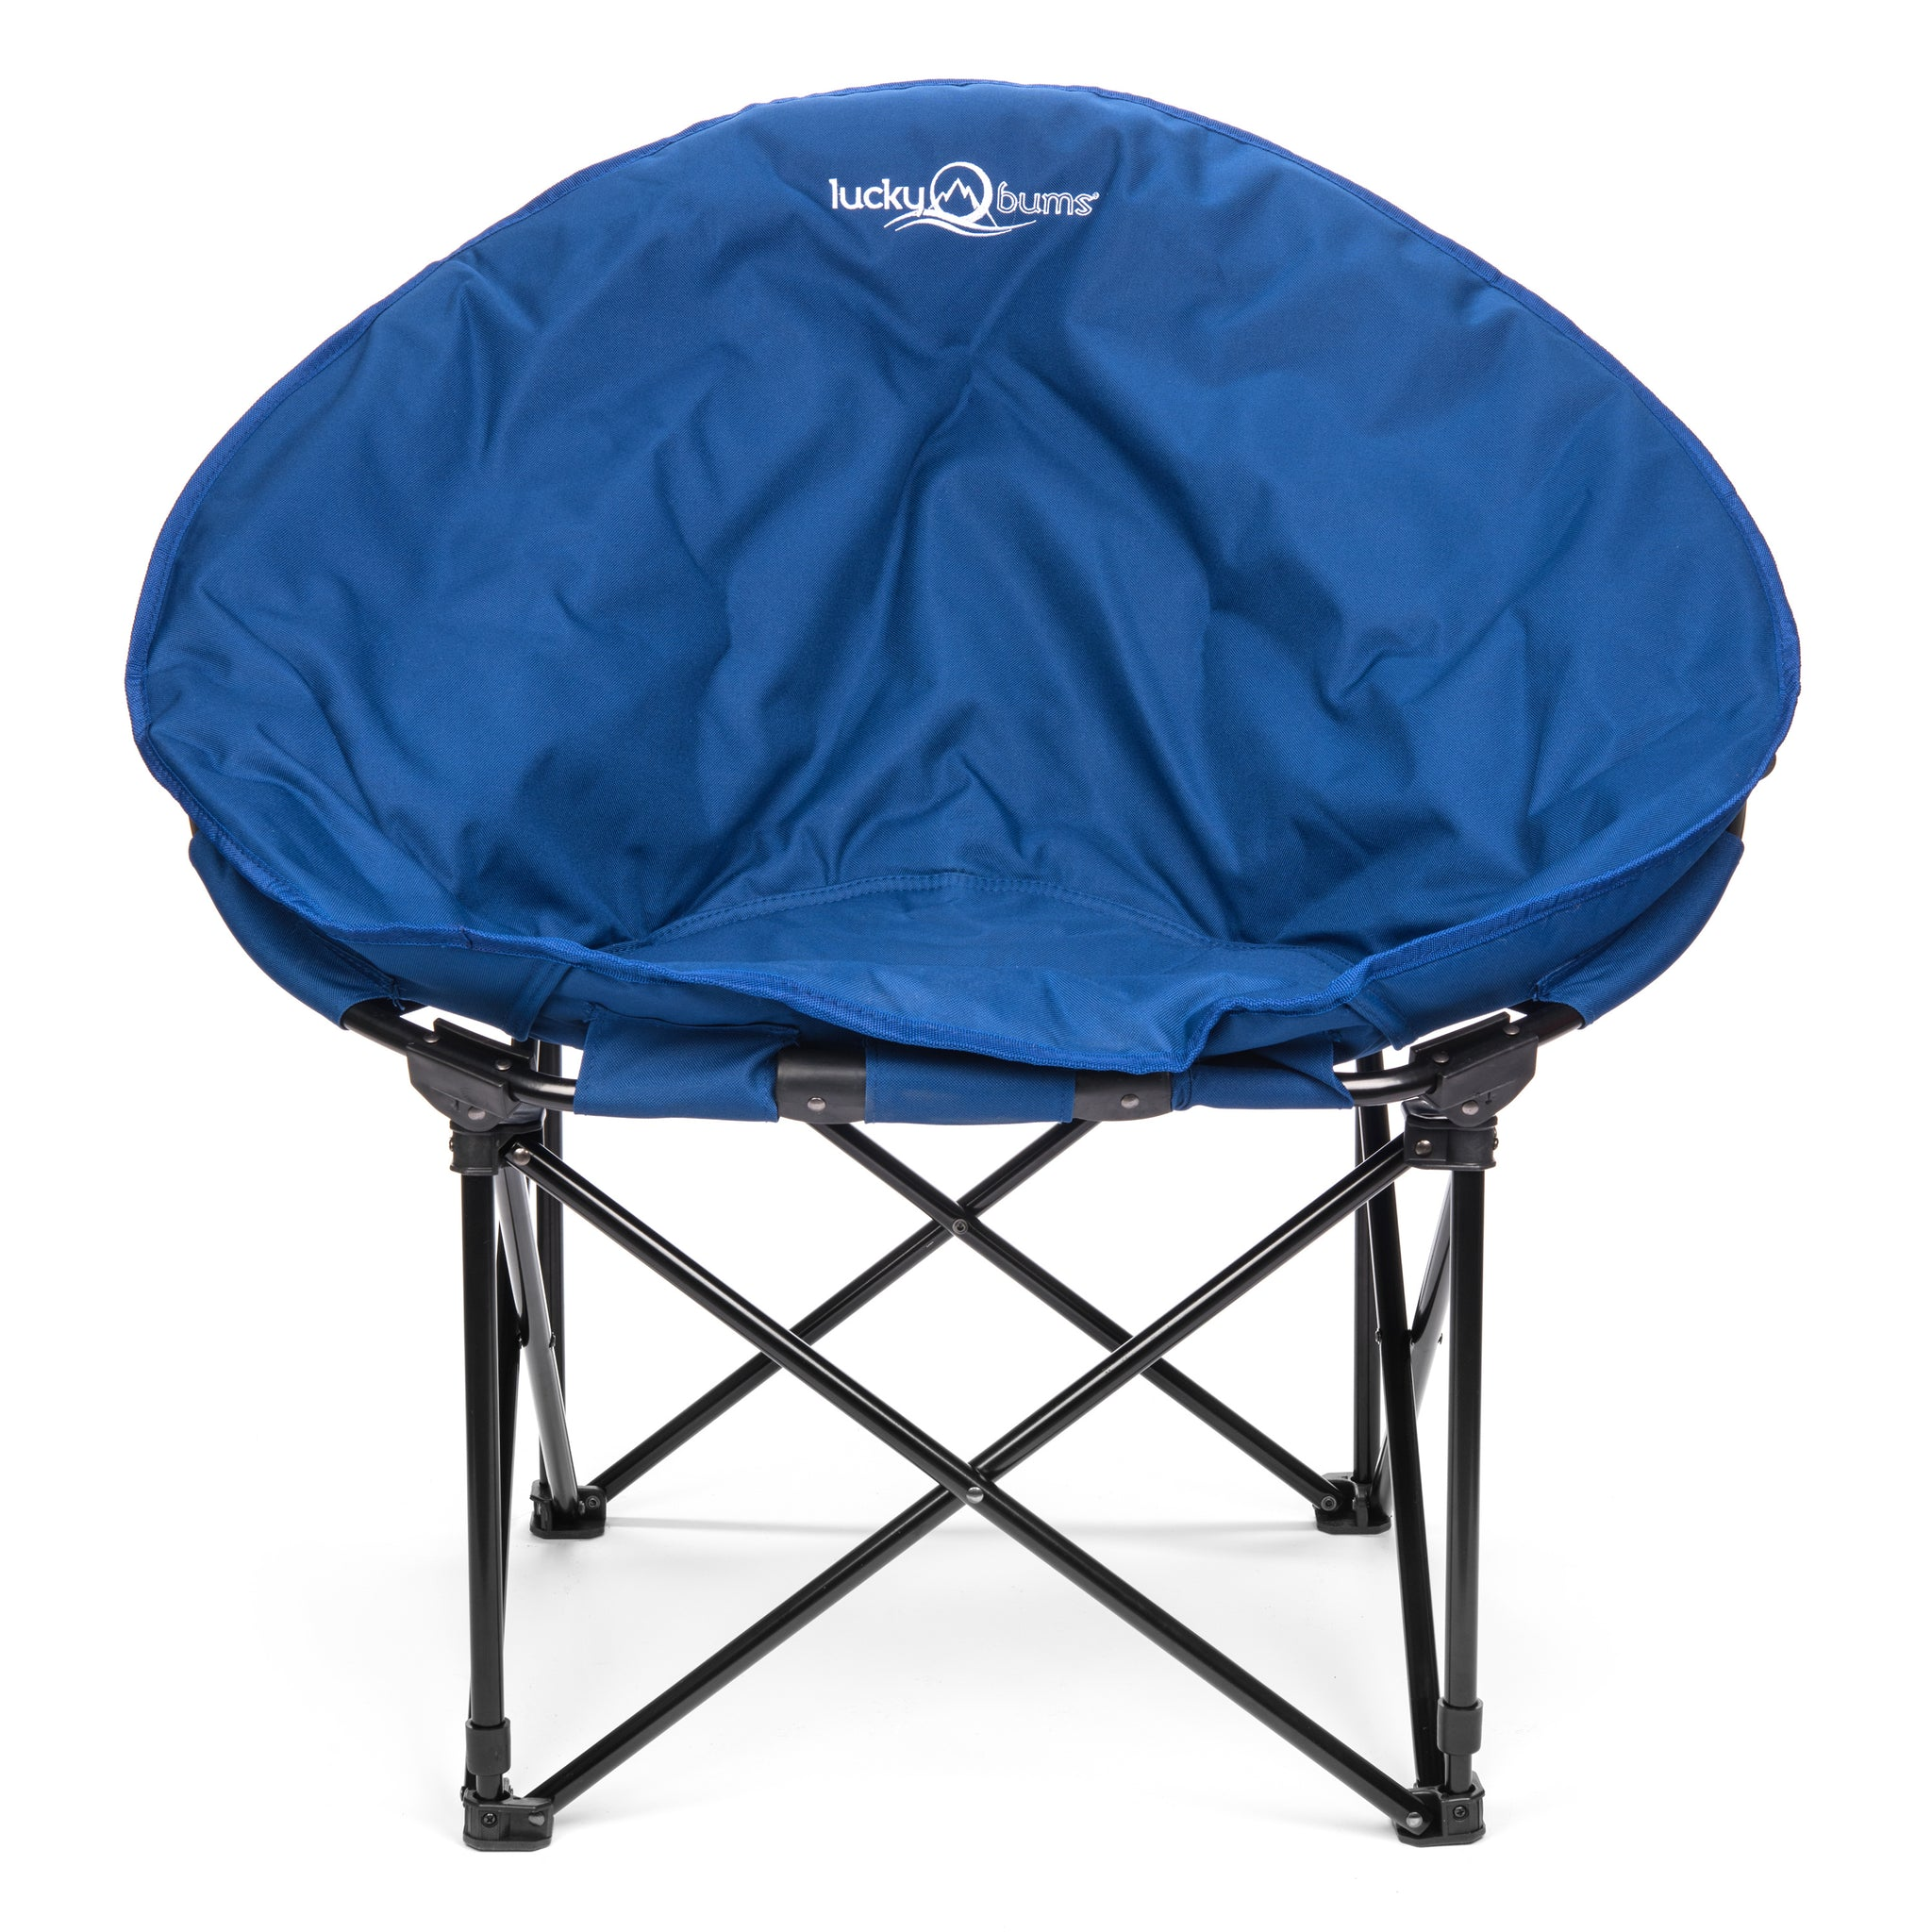 lucky bums kid s fishing and outdoor adventure vest moon camp chair canada base camp moon chair